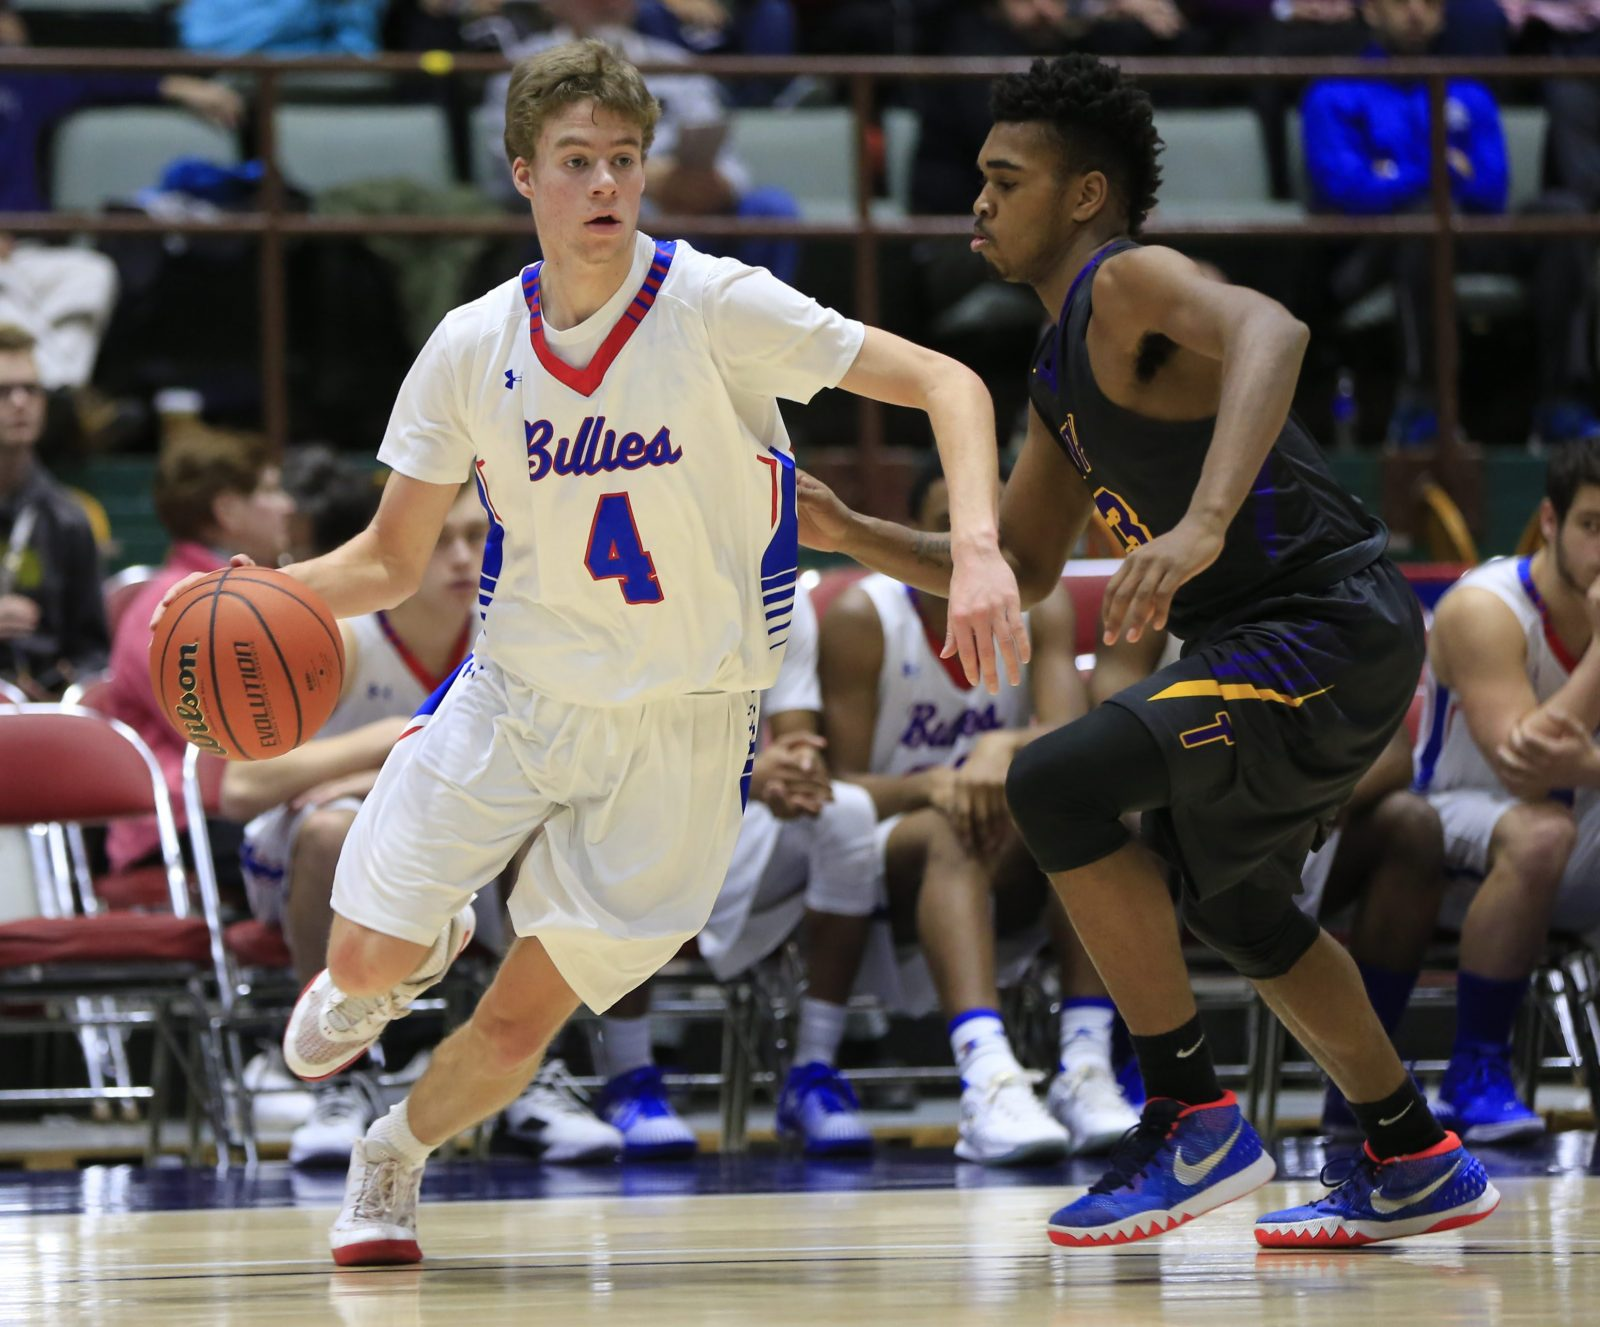 Greg Dolan and the defending Section VI champions from Williamsville South are the top seed in Class A-1. (Harry Scull Jr./Buffalo News)